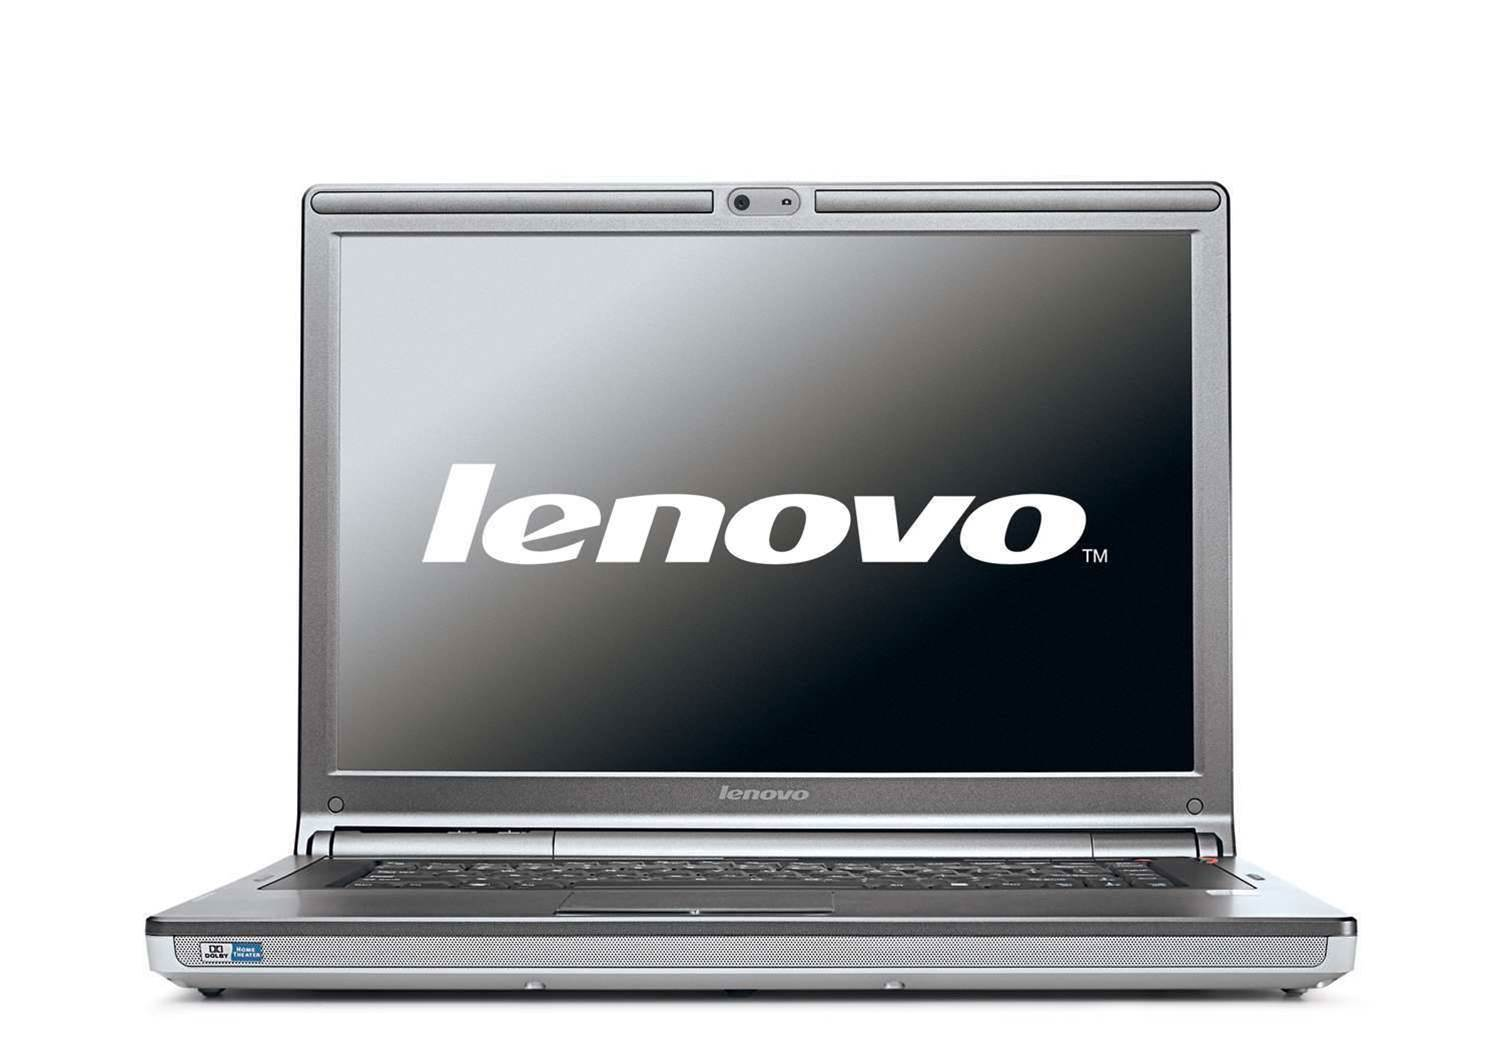 Lenovo caught installing adware on laptops